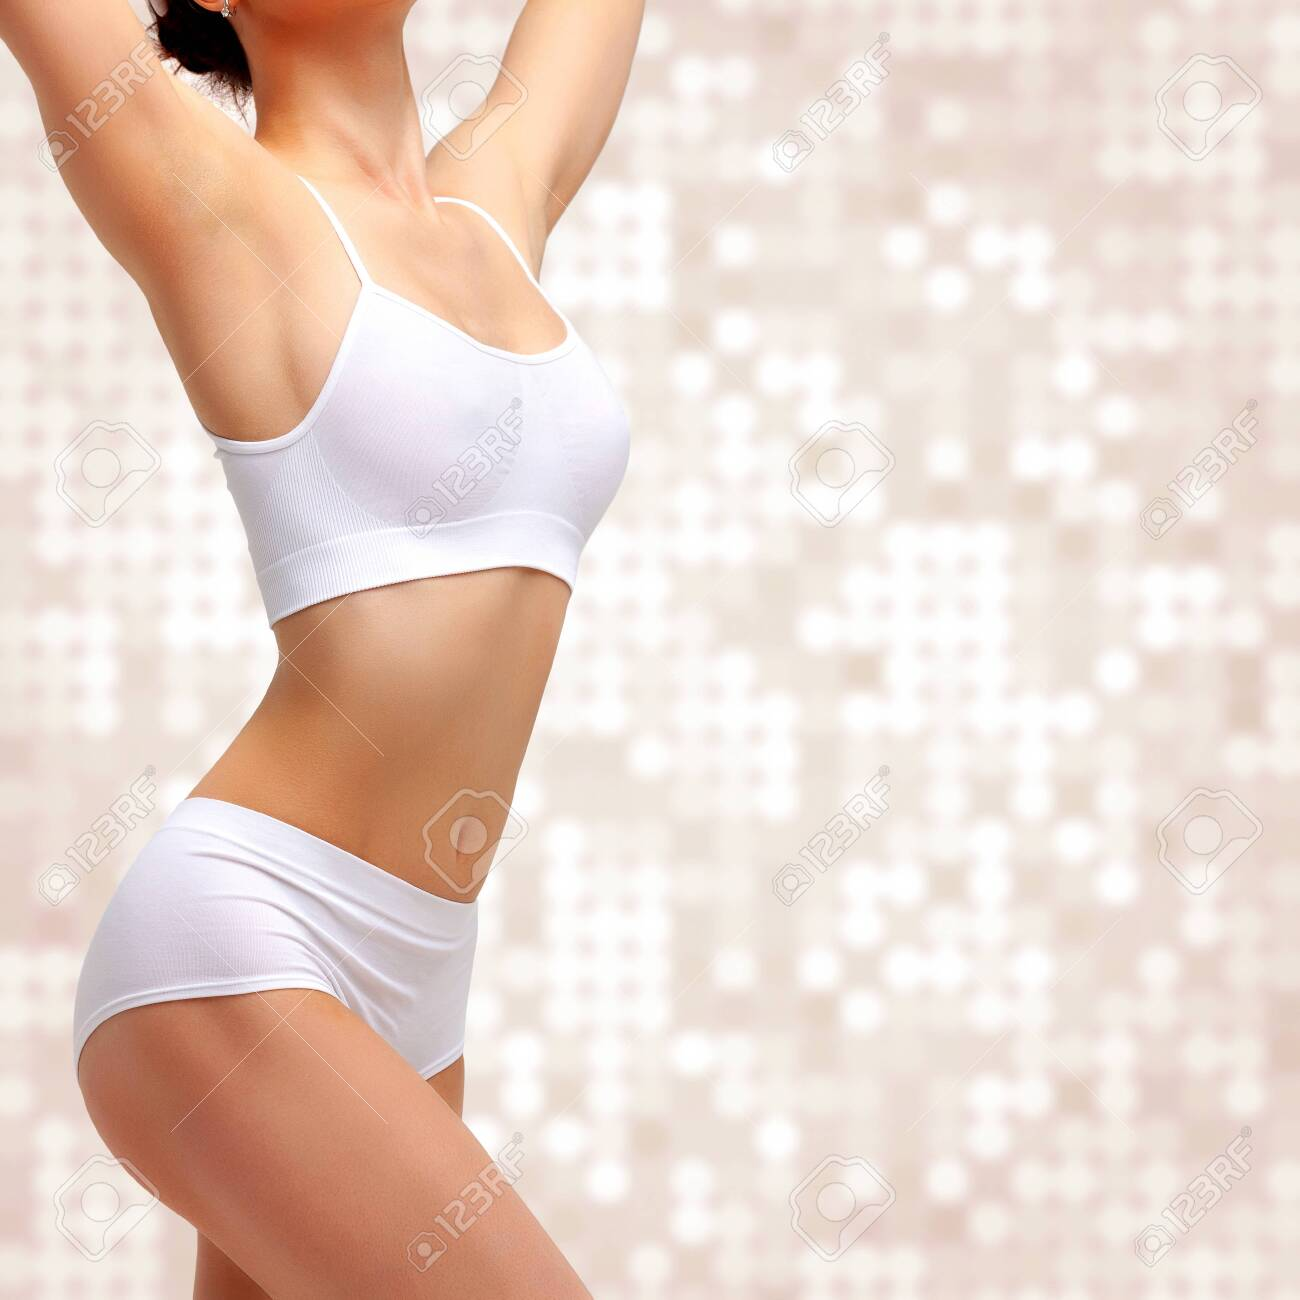 Slim slender woman in white underwear posing against abstract background. Wellness and body care concept. Healthy lifestyle - 129952187